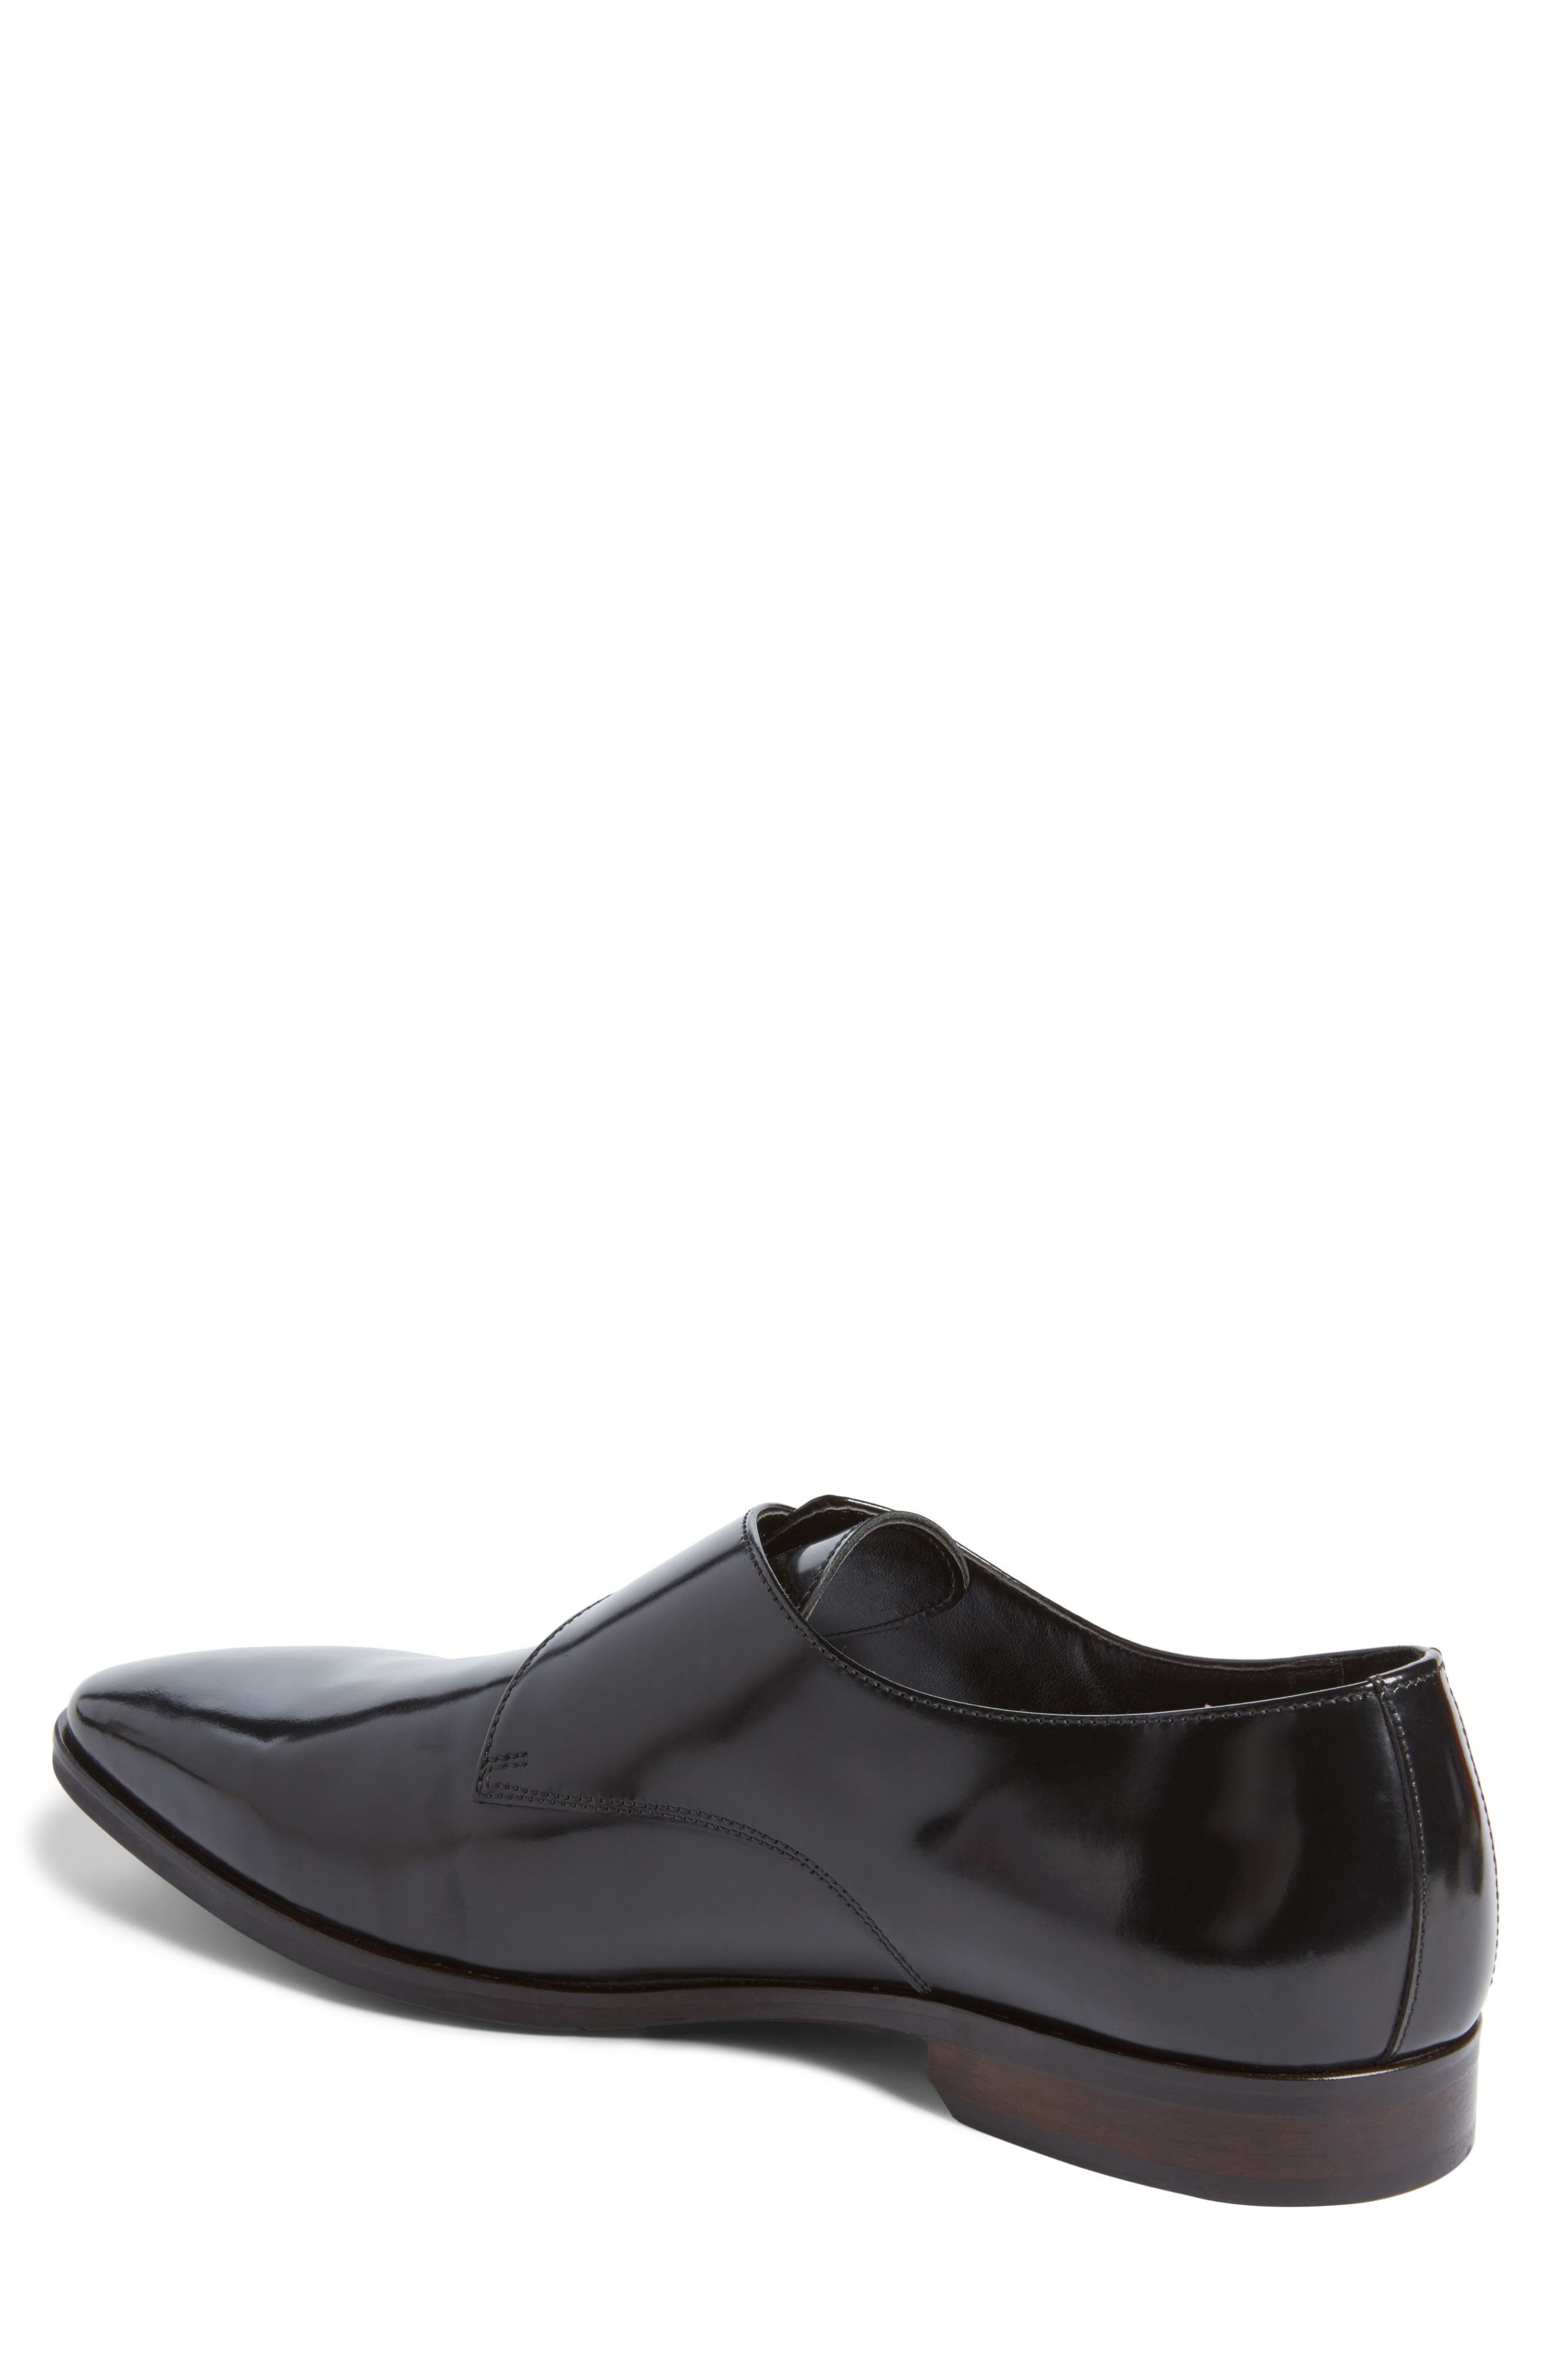 Webster Single Strap Monk Shoe,                             Alternate thumbnail 2, color,                             001